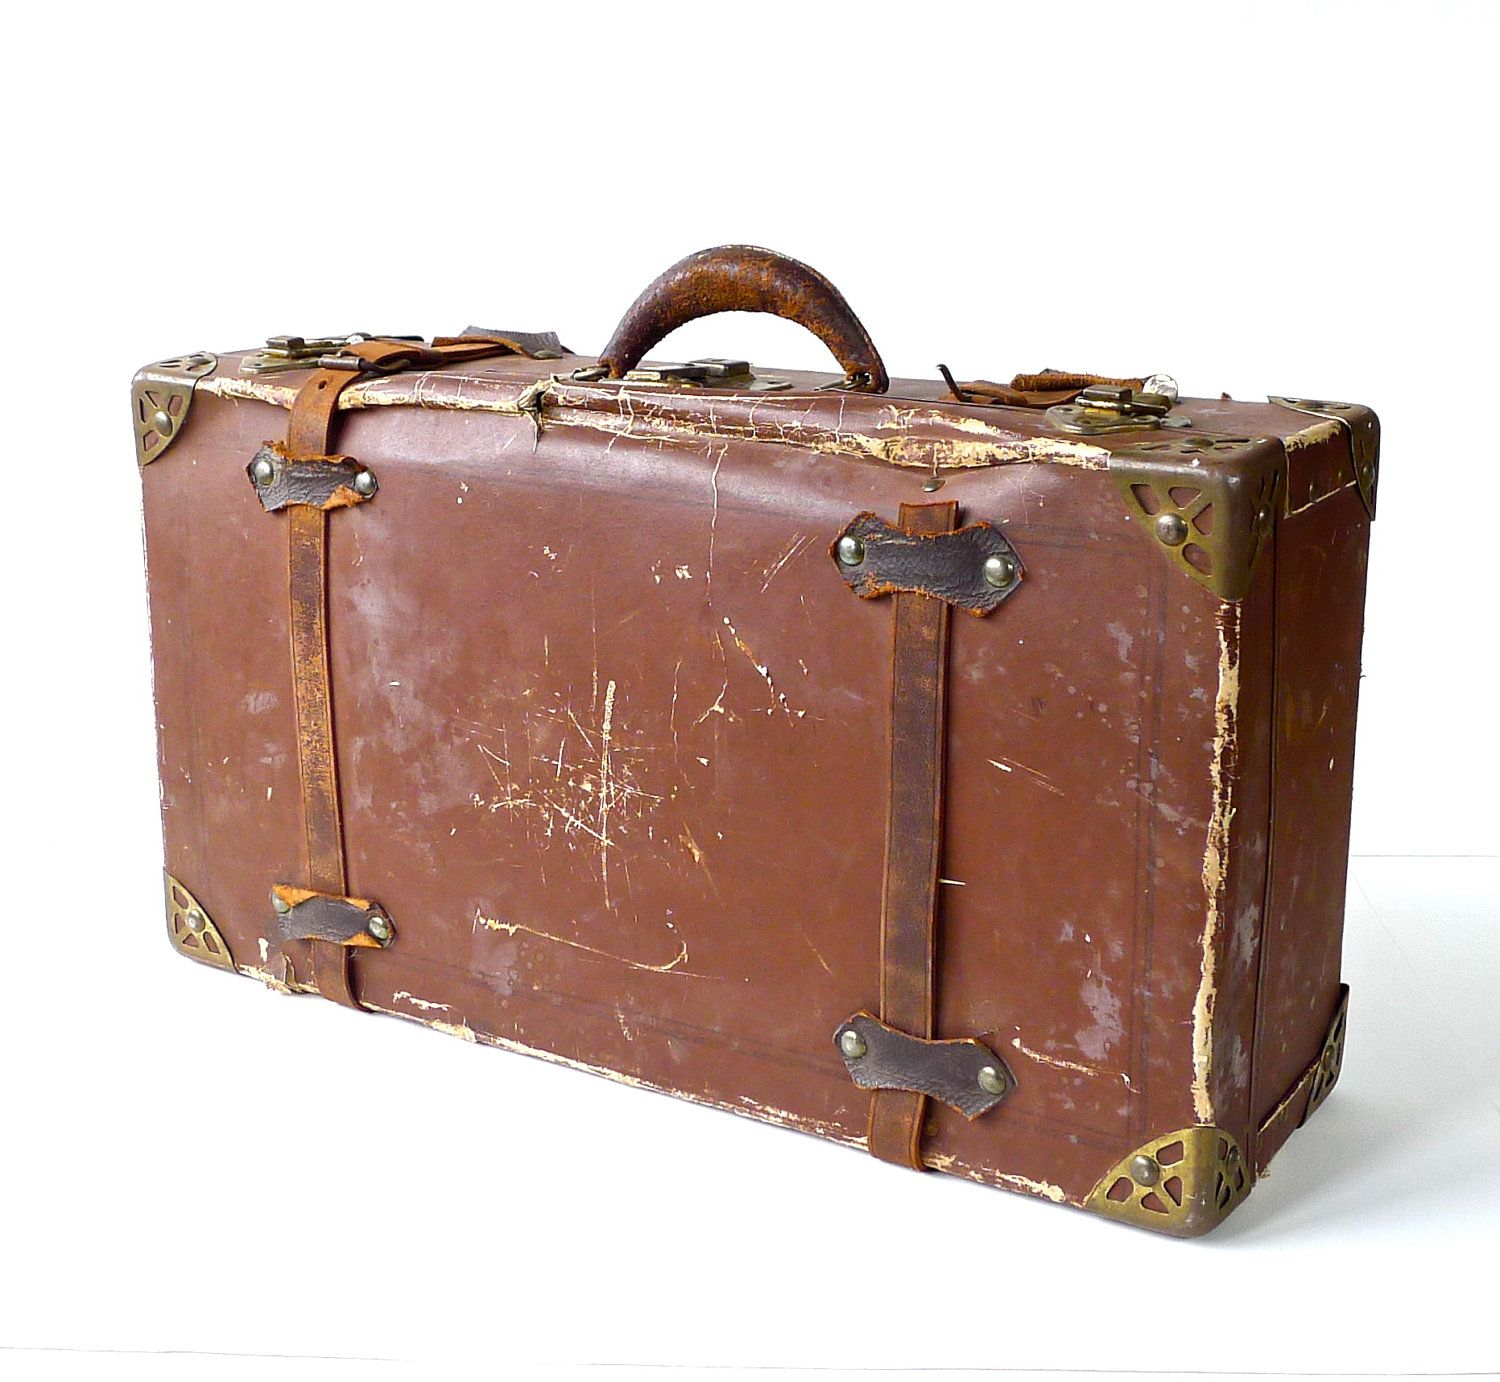 Antique Cardboard Poor Man's Suitcase | Search, Suitcases and Antiques